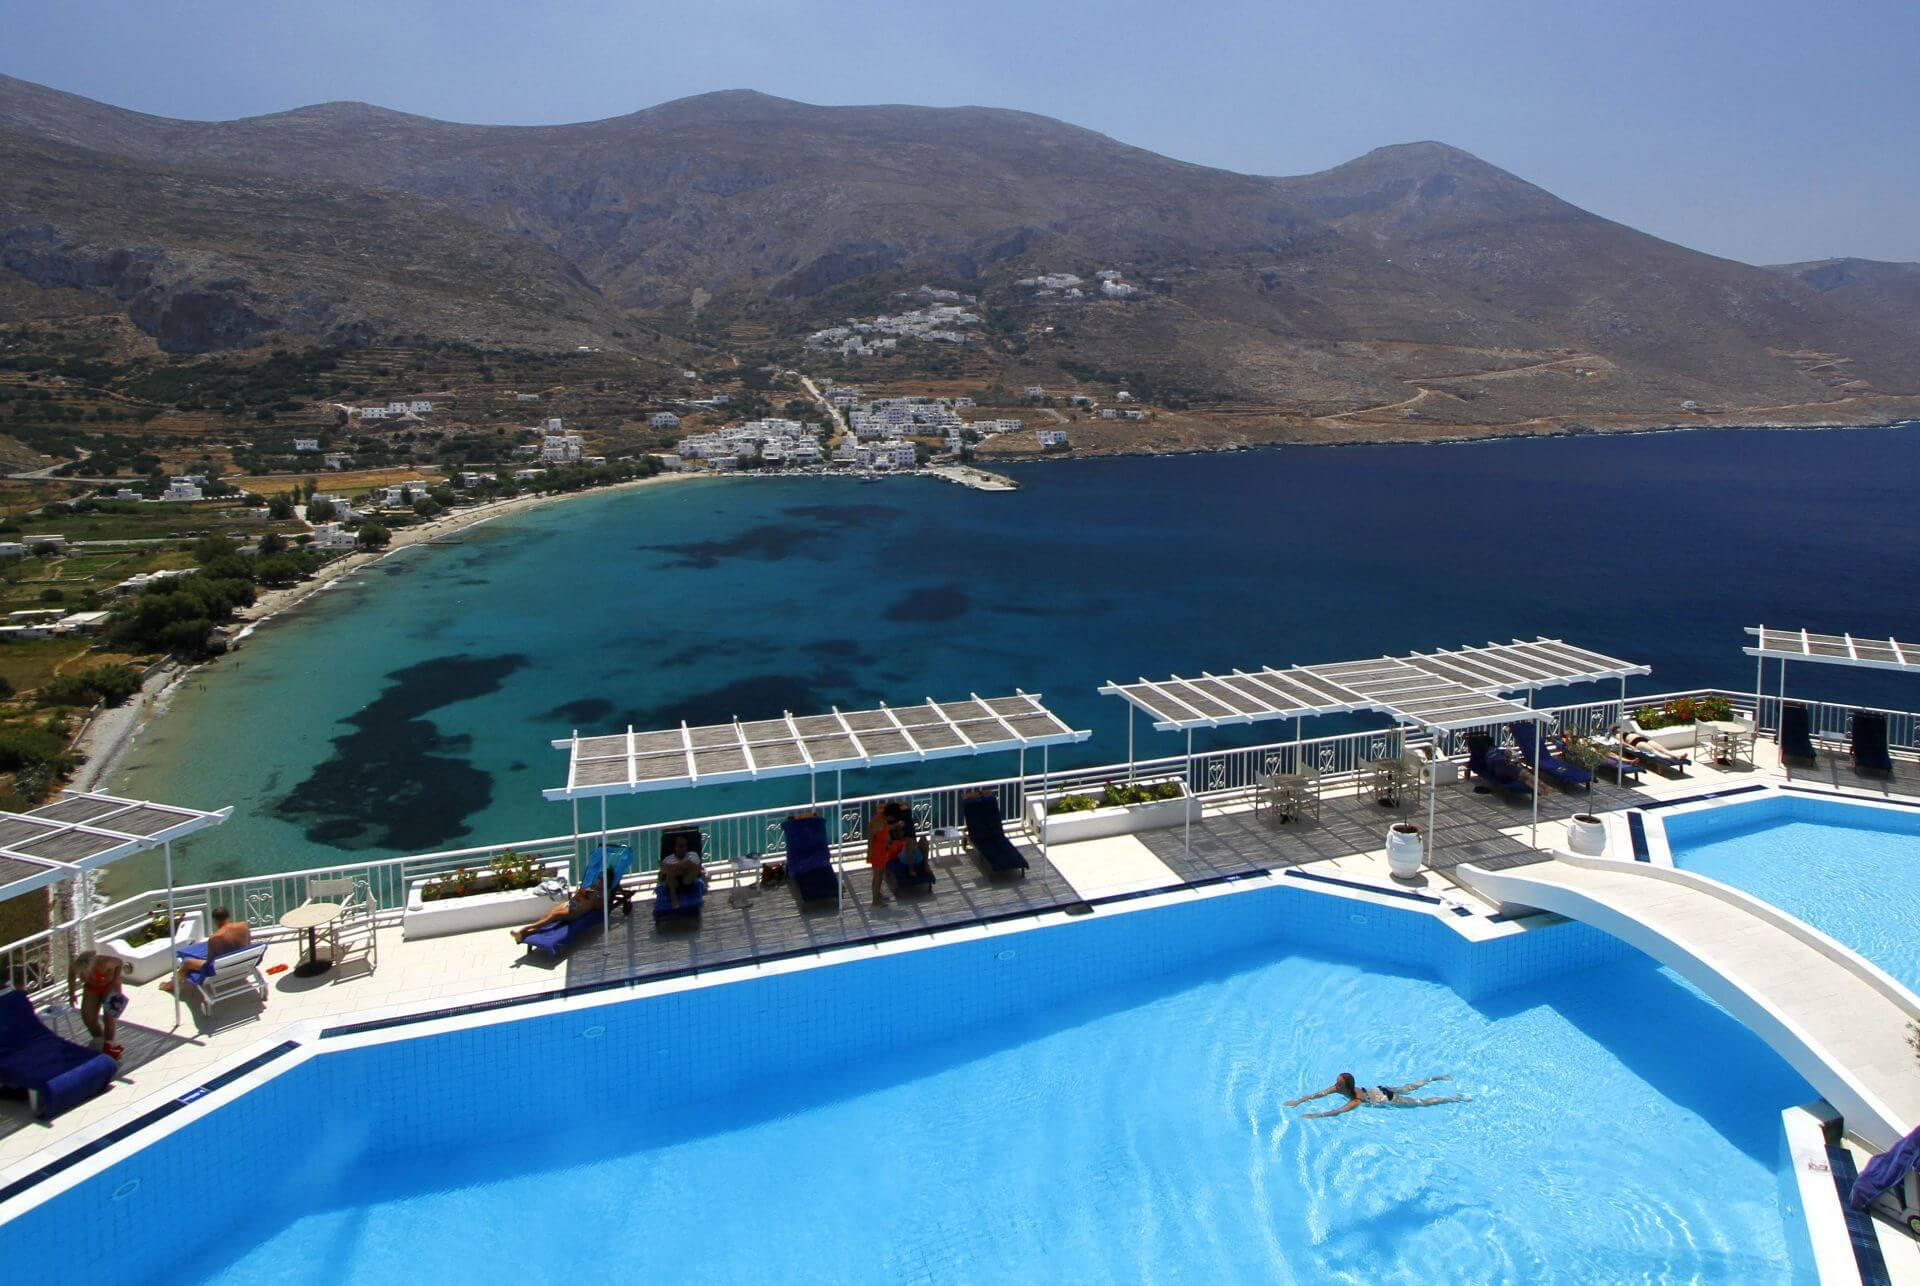 Accommodation and hotels in Amorgos